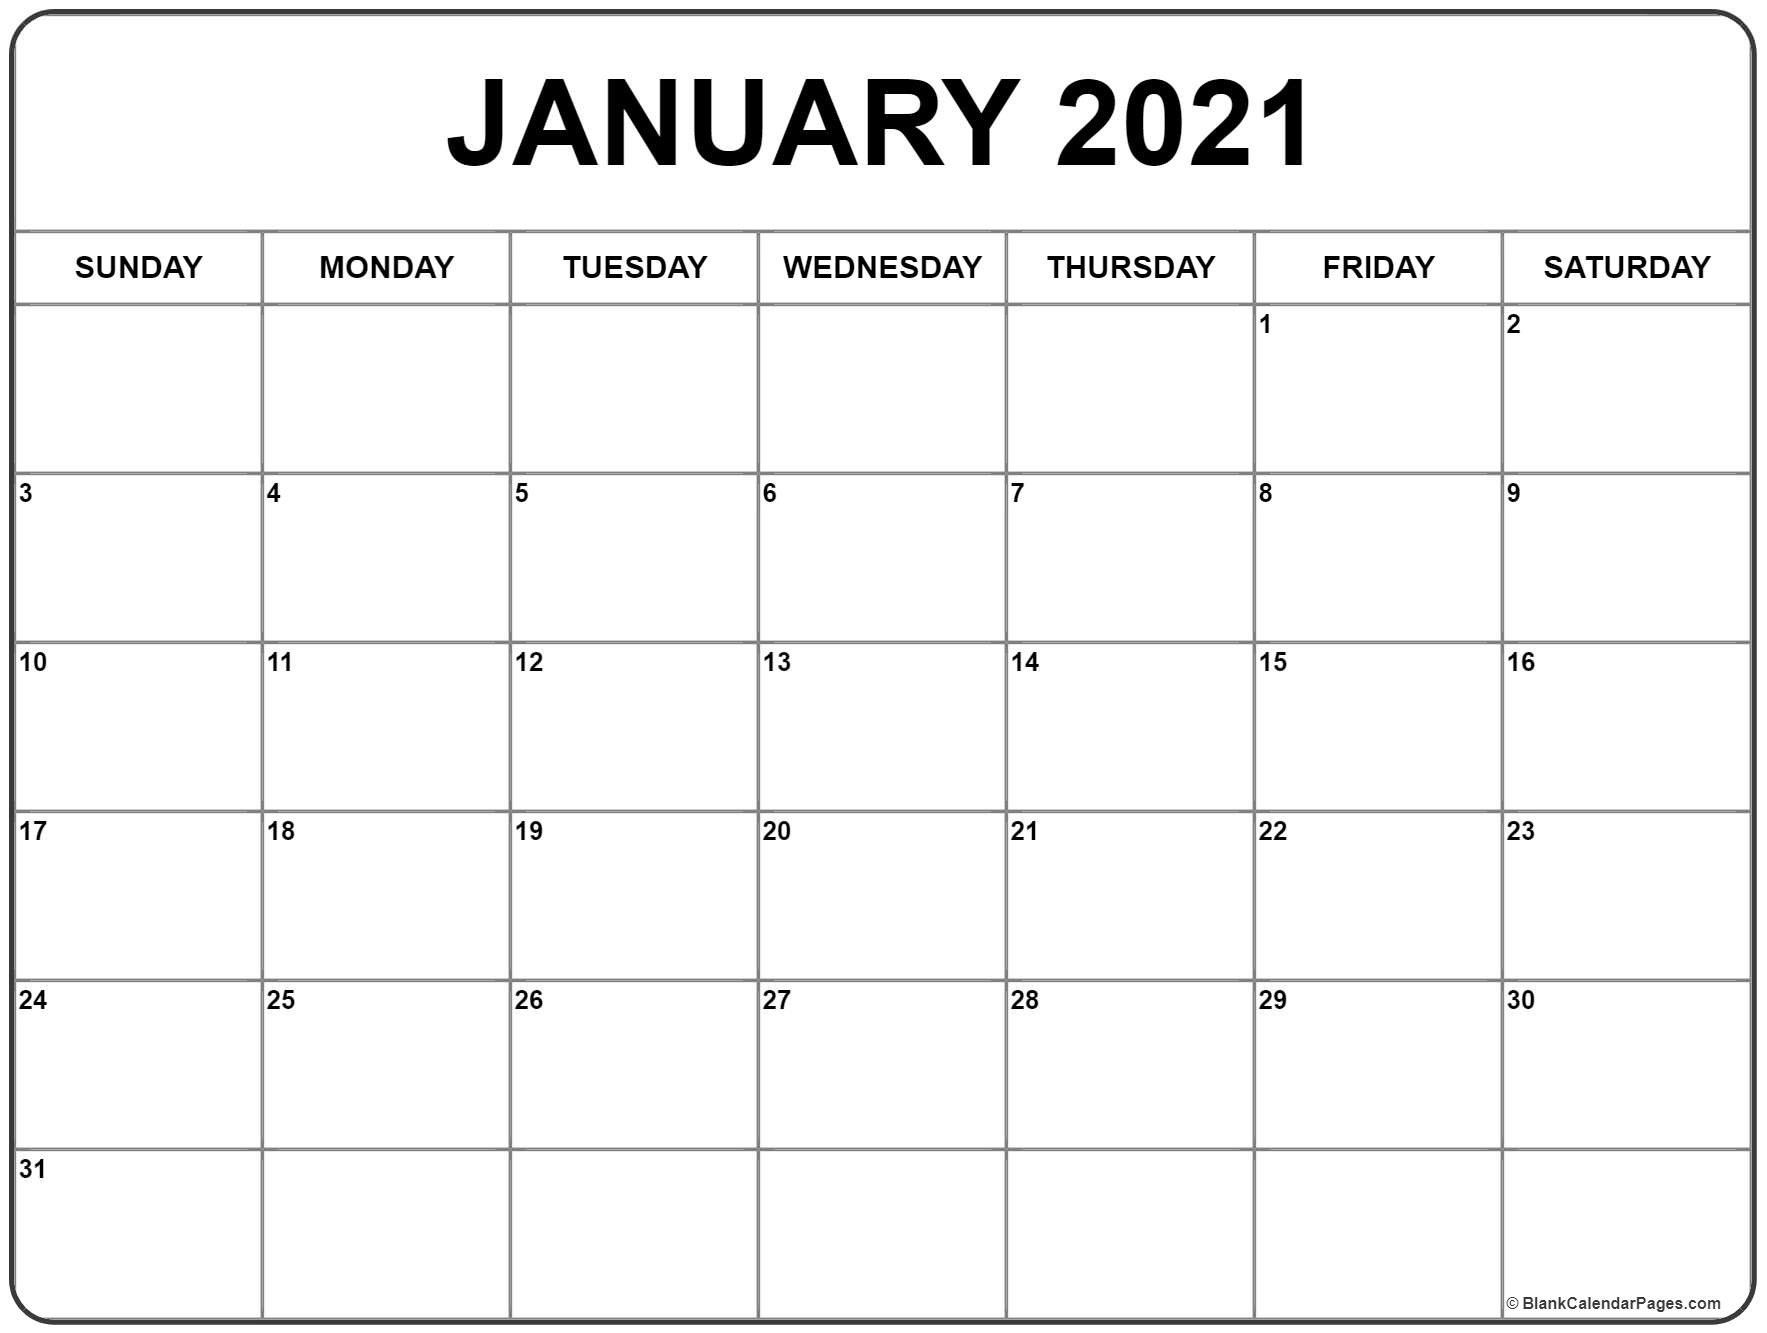 Calendar January 2021 Printable In 2020 Monthly Calendar Printable August Calendar June Calendar Printable